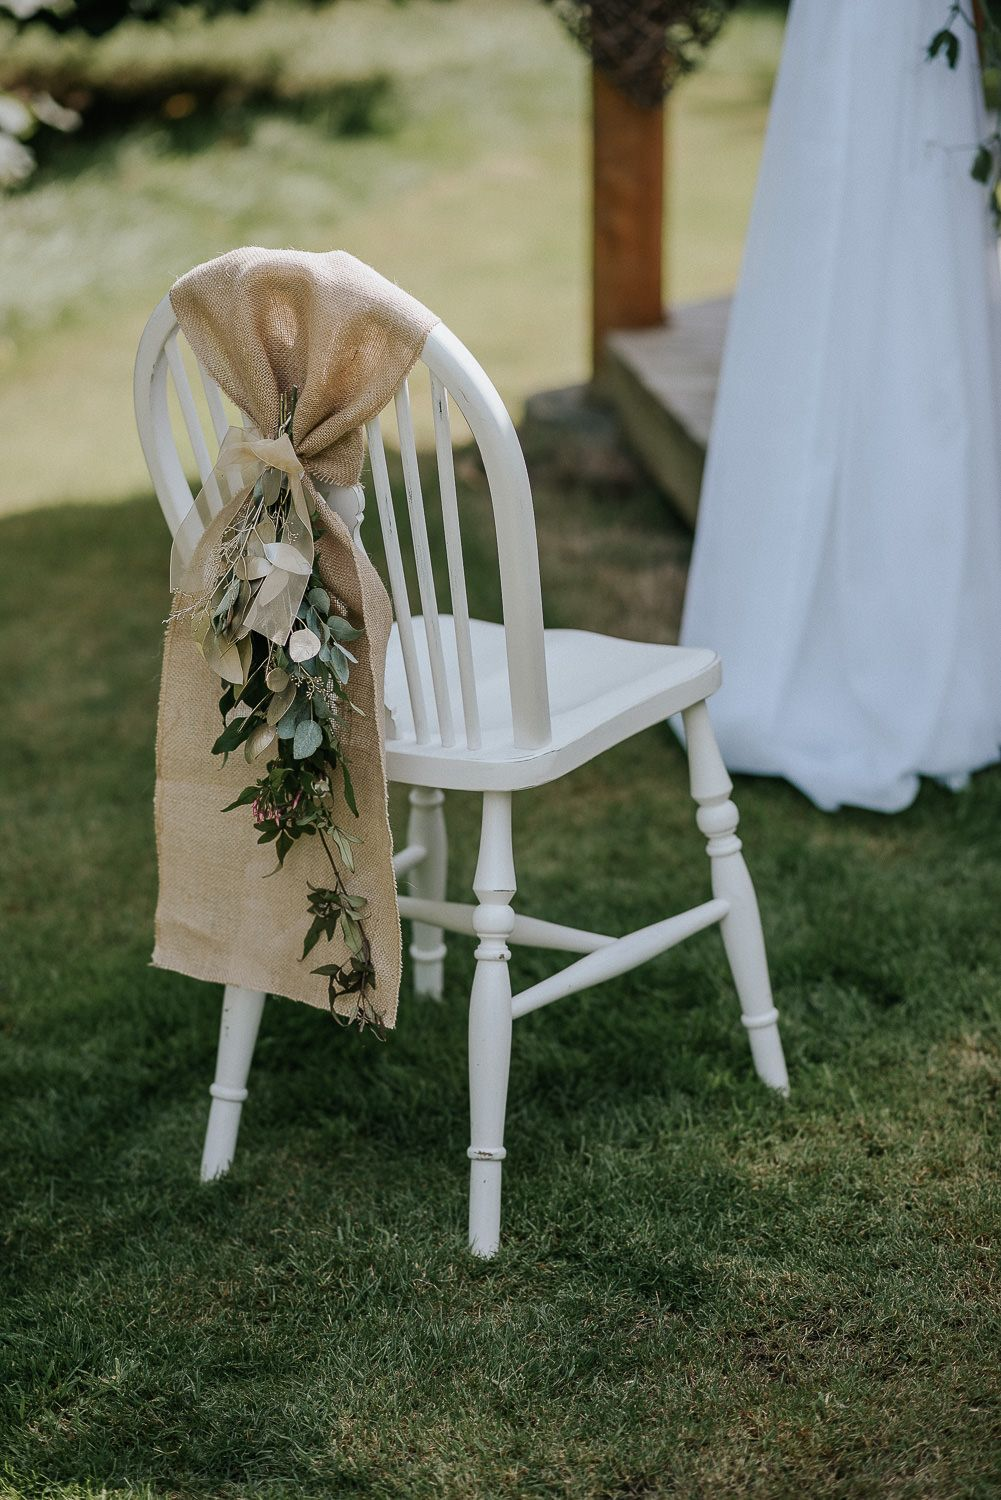 Hessian Chair Sash With Foilage Dressing Our Chair At Cosawes Barton Cornwall Wedding Chair Decorations Wedding Chair Sashes Chair Decorations